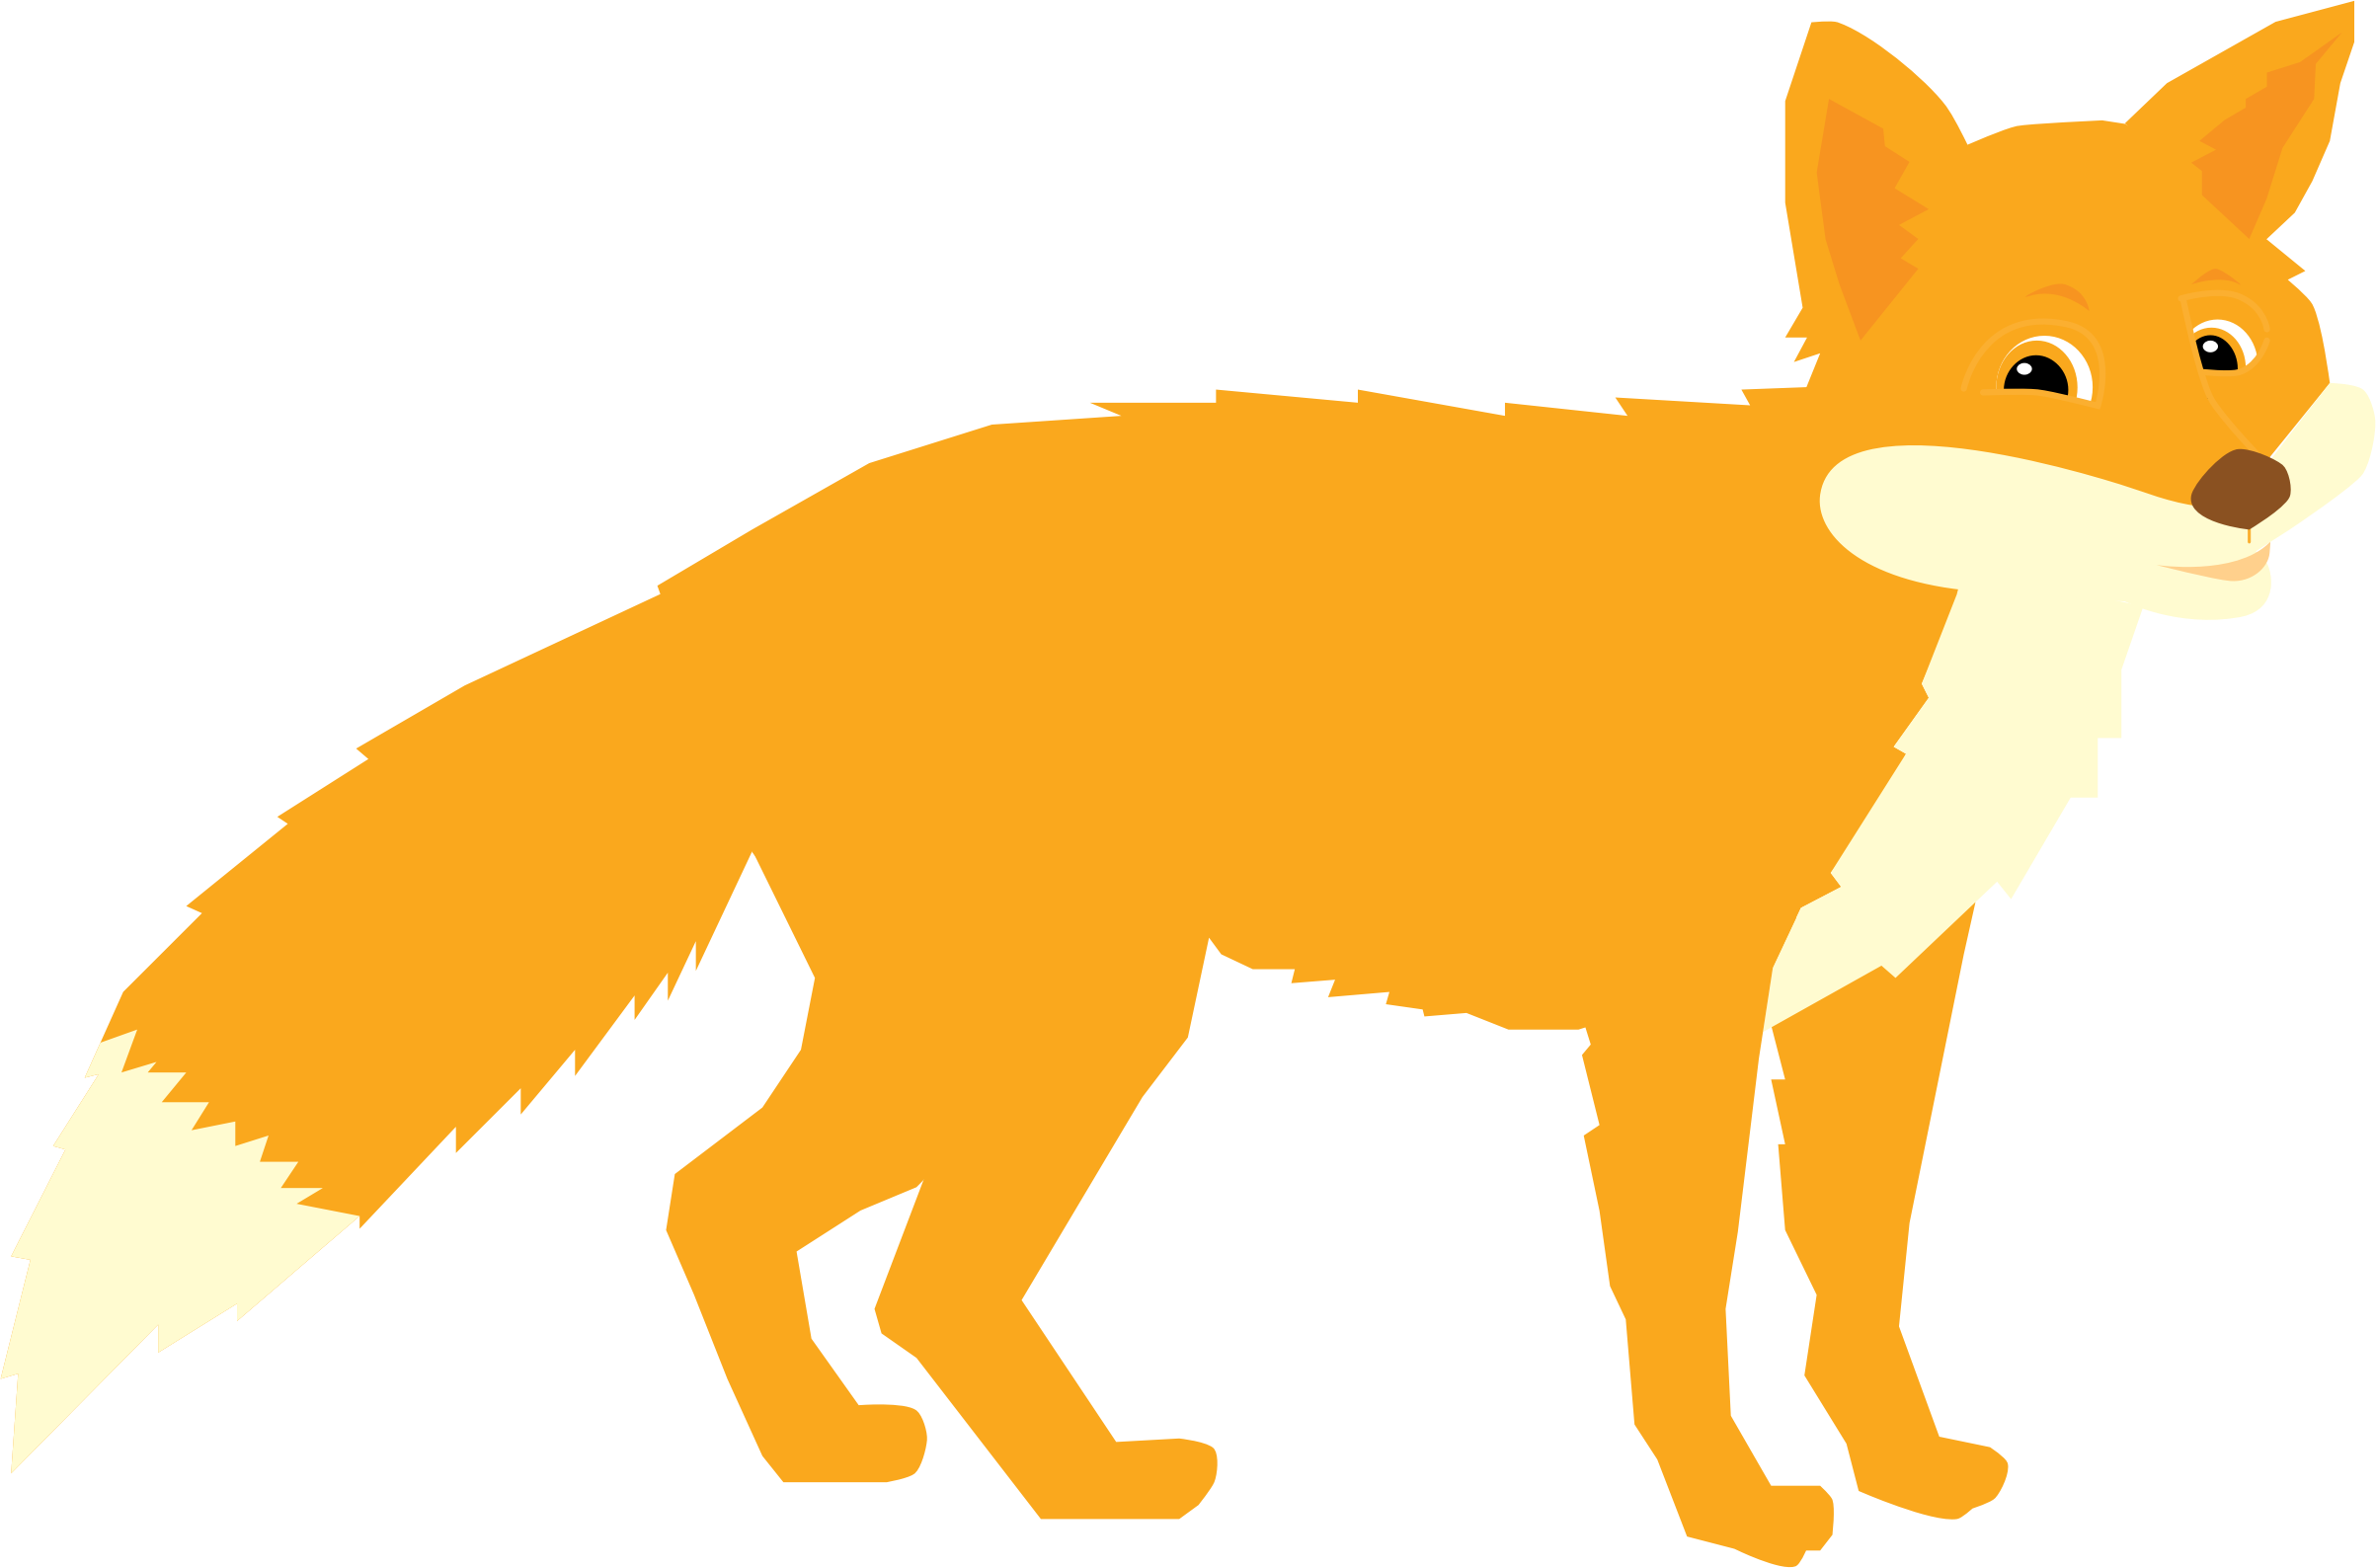 Cute bclipart without backgroundbclipart. Fox clipart valentines day